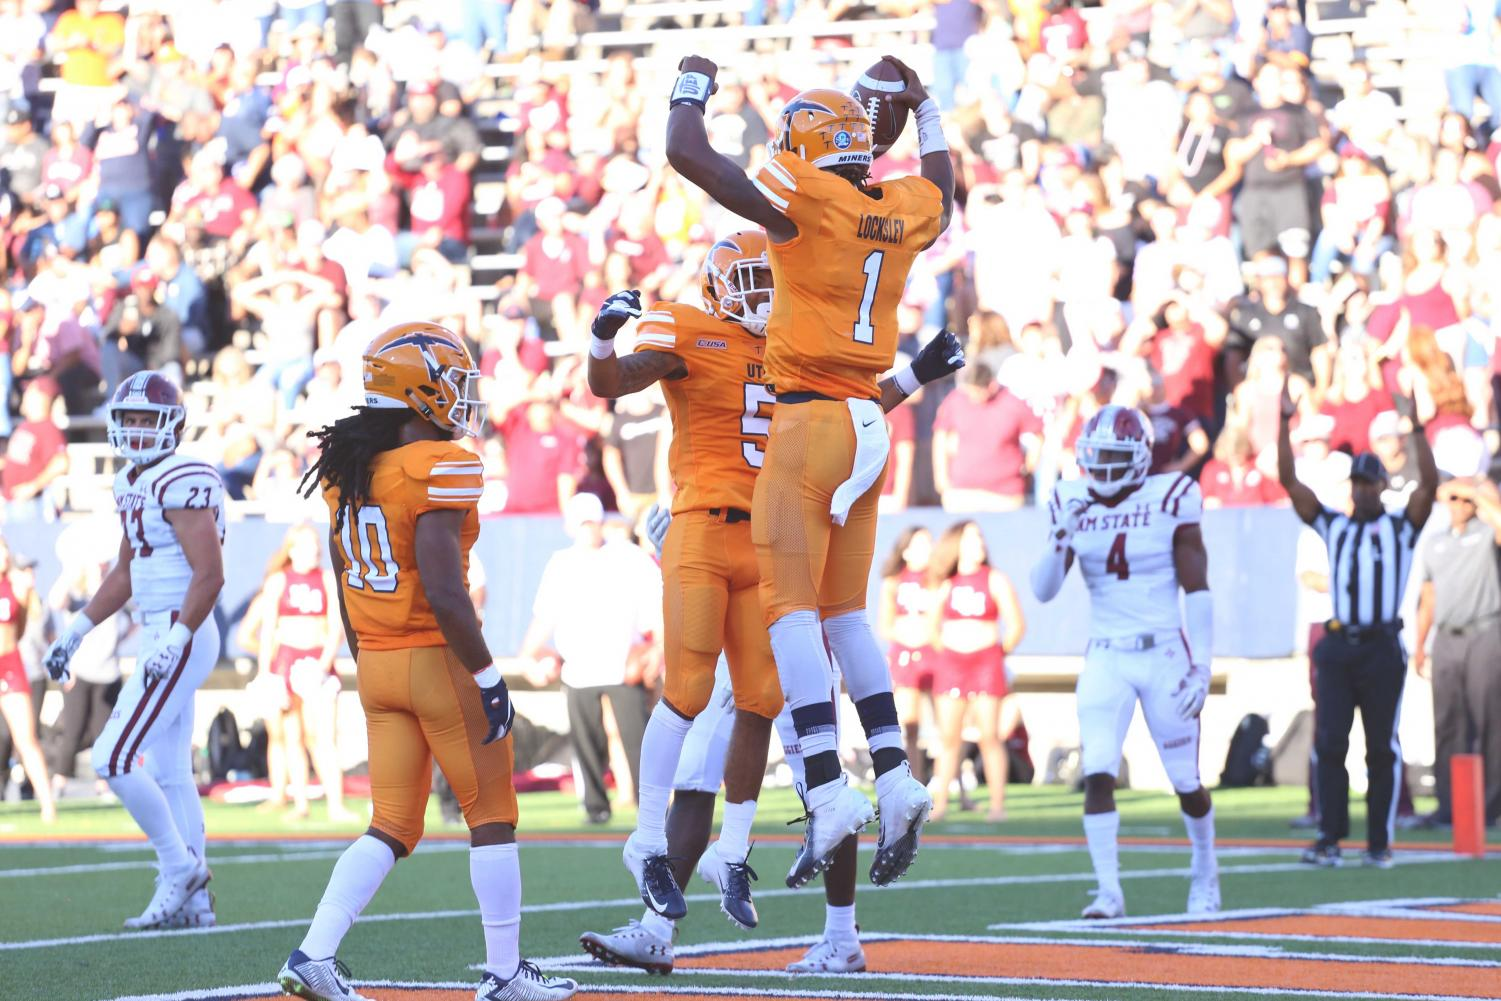 Junior+wide+receiver+Keynan+Foster+and+junior+Quarterback+Kai+Locksley+celebrate+as+UTEP+tied+the+game+at+seven.+